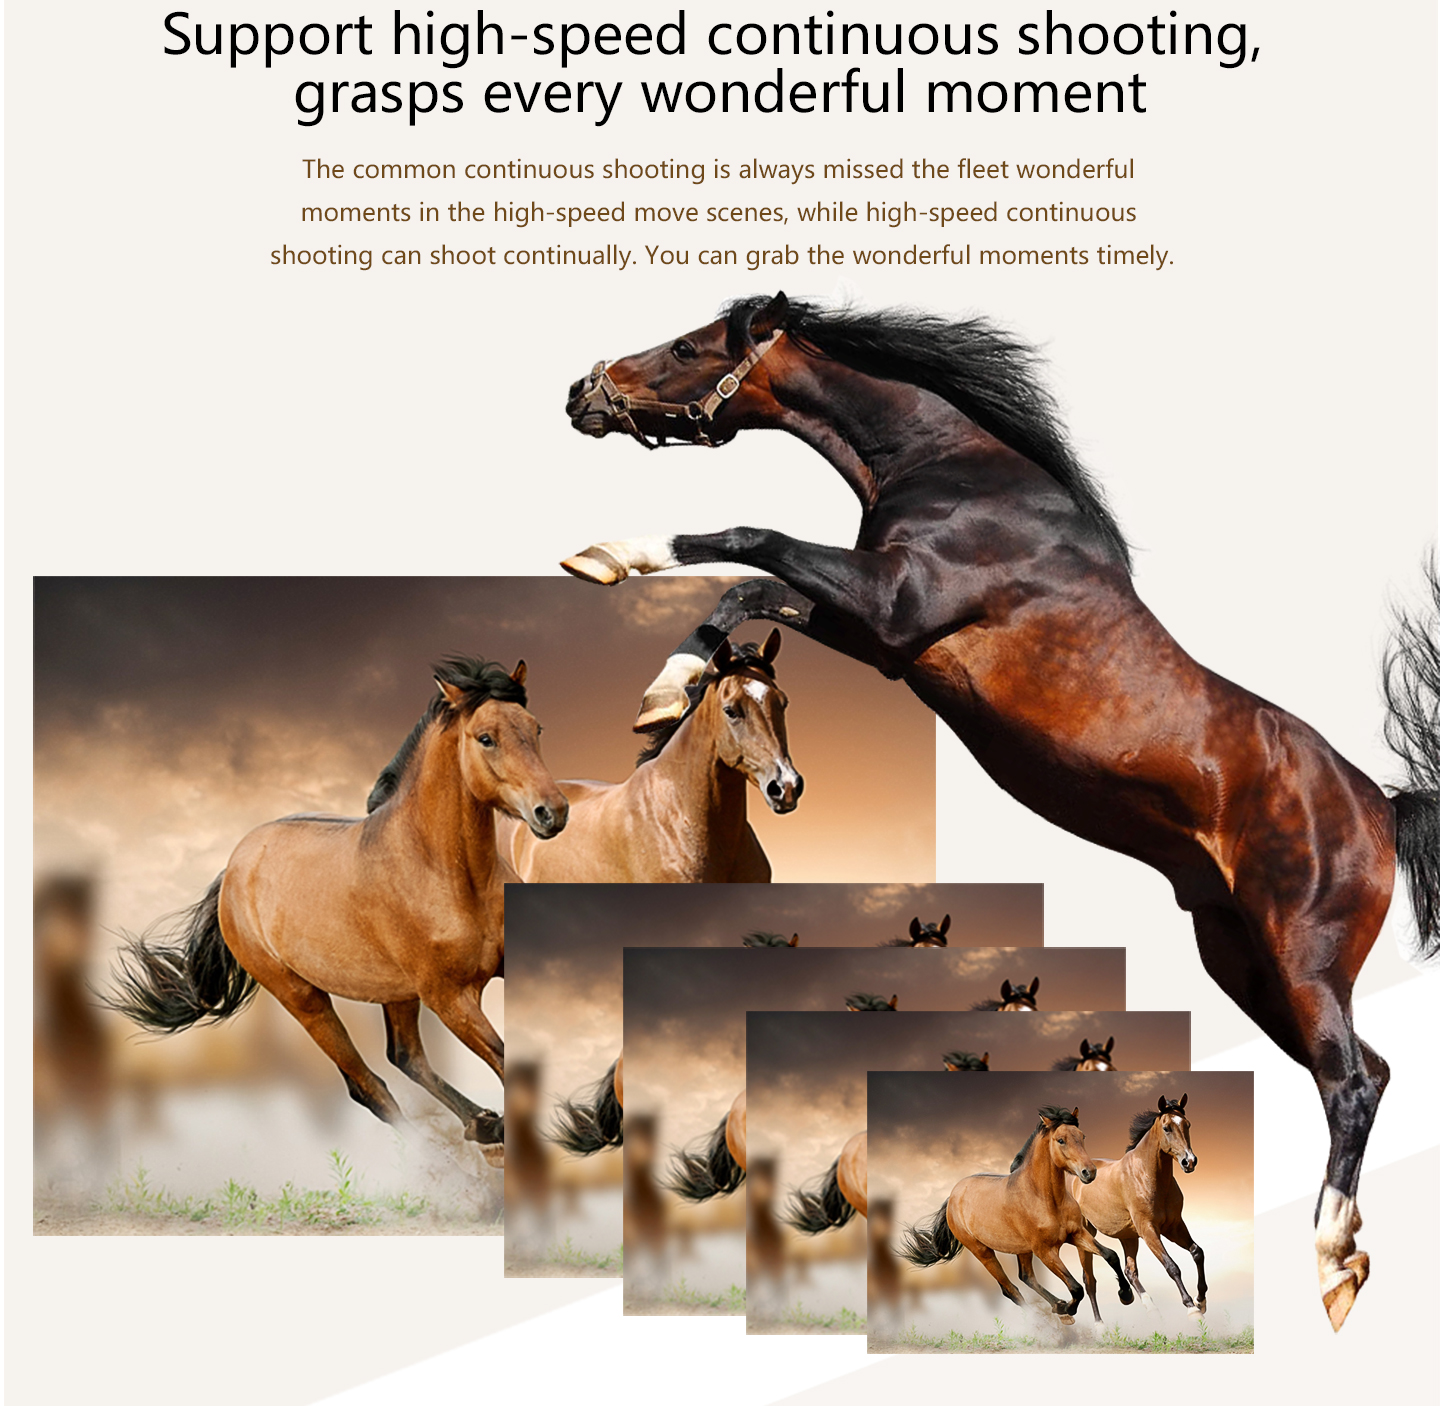 Support high-speed continuous shooting, grasps every wonderful moment